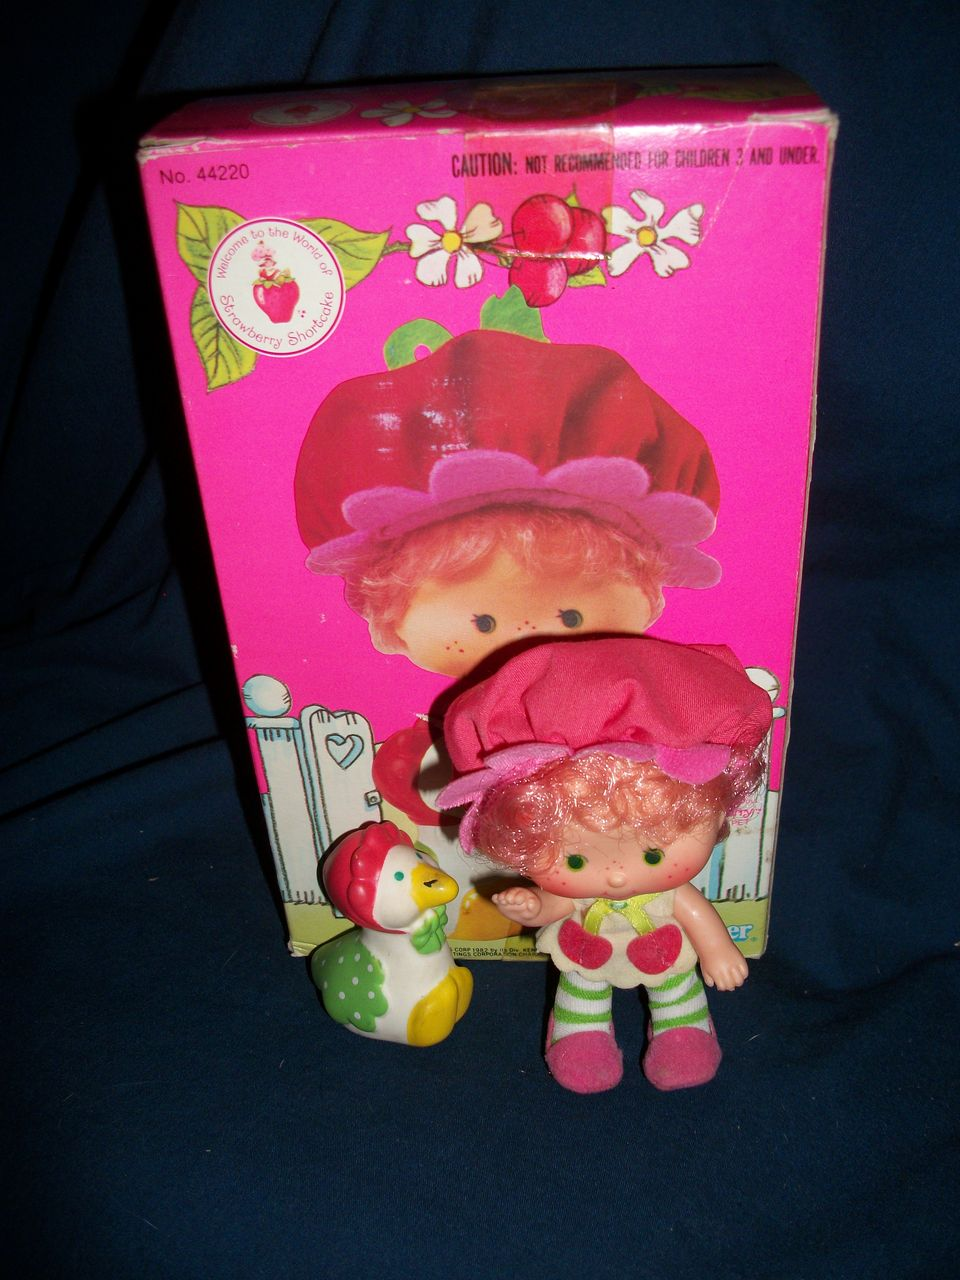 44220 Cherry Cuddler Gooseberry Kenner Strawberry Shortcake Doll US Buyer Free Postage & Insurance